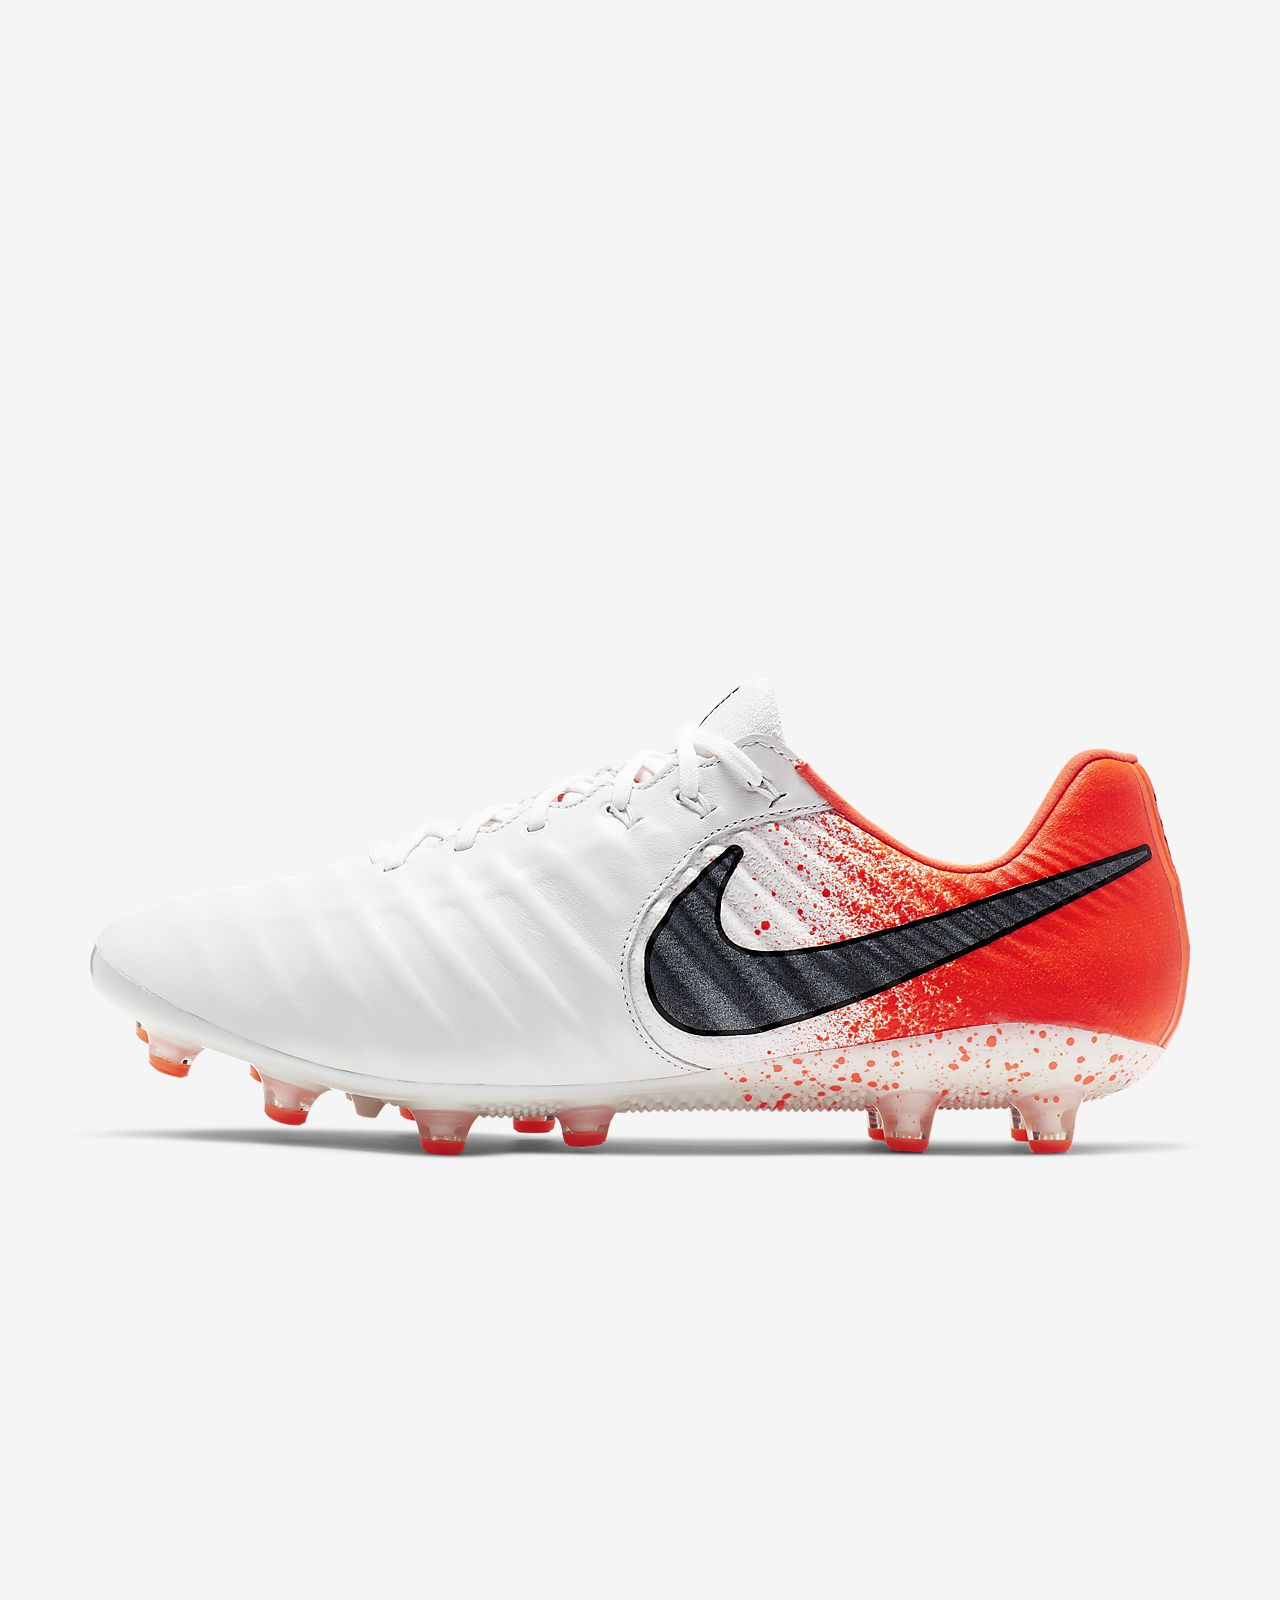 new products 5442e fff26 ... Chaussure de football à crampons pour terrain synthétique Nike Legend  VII Elite AG-PRO